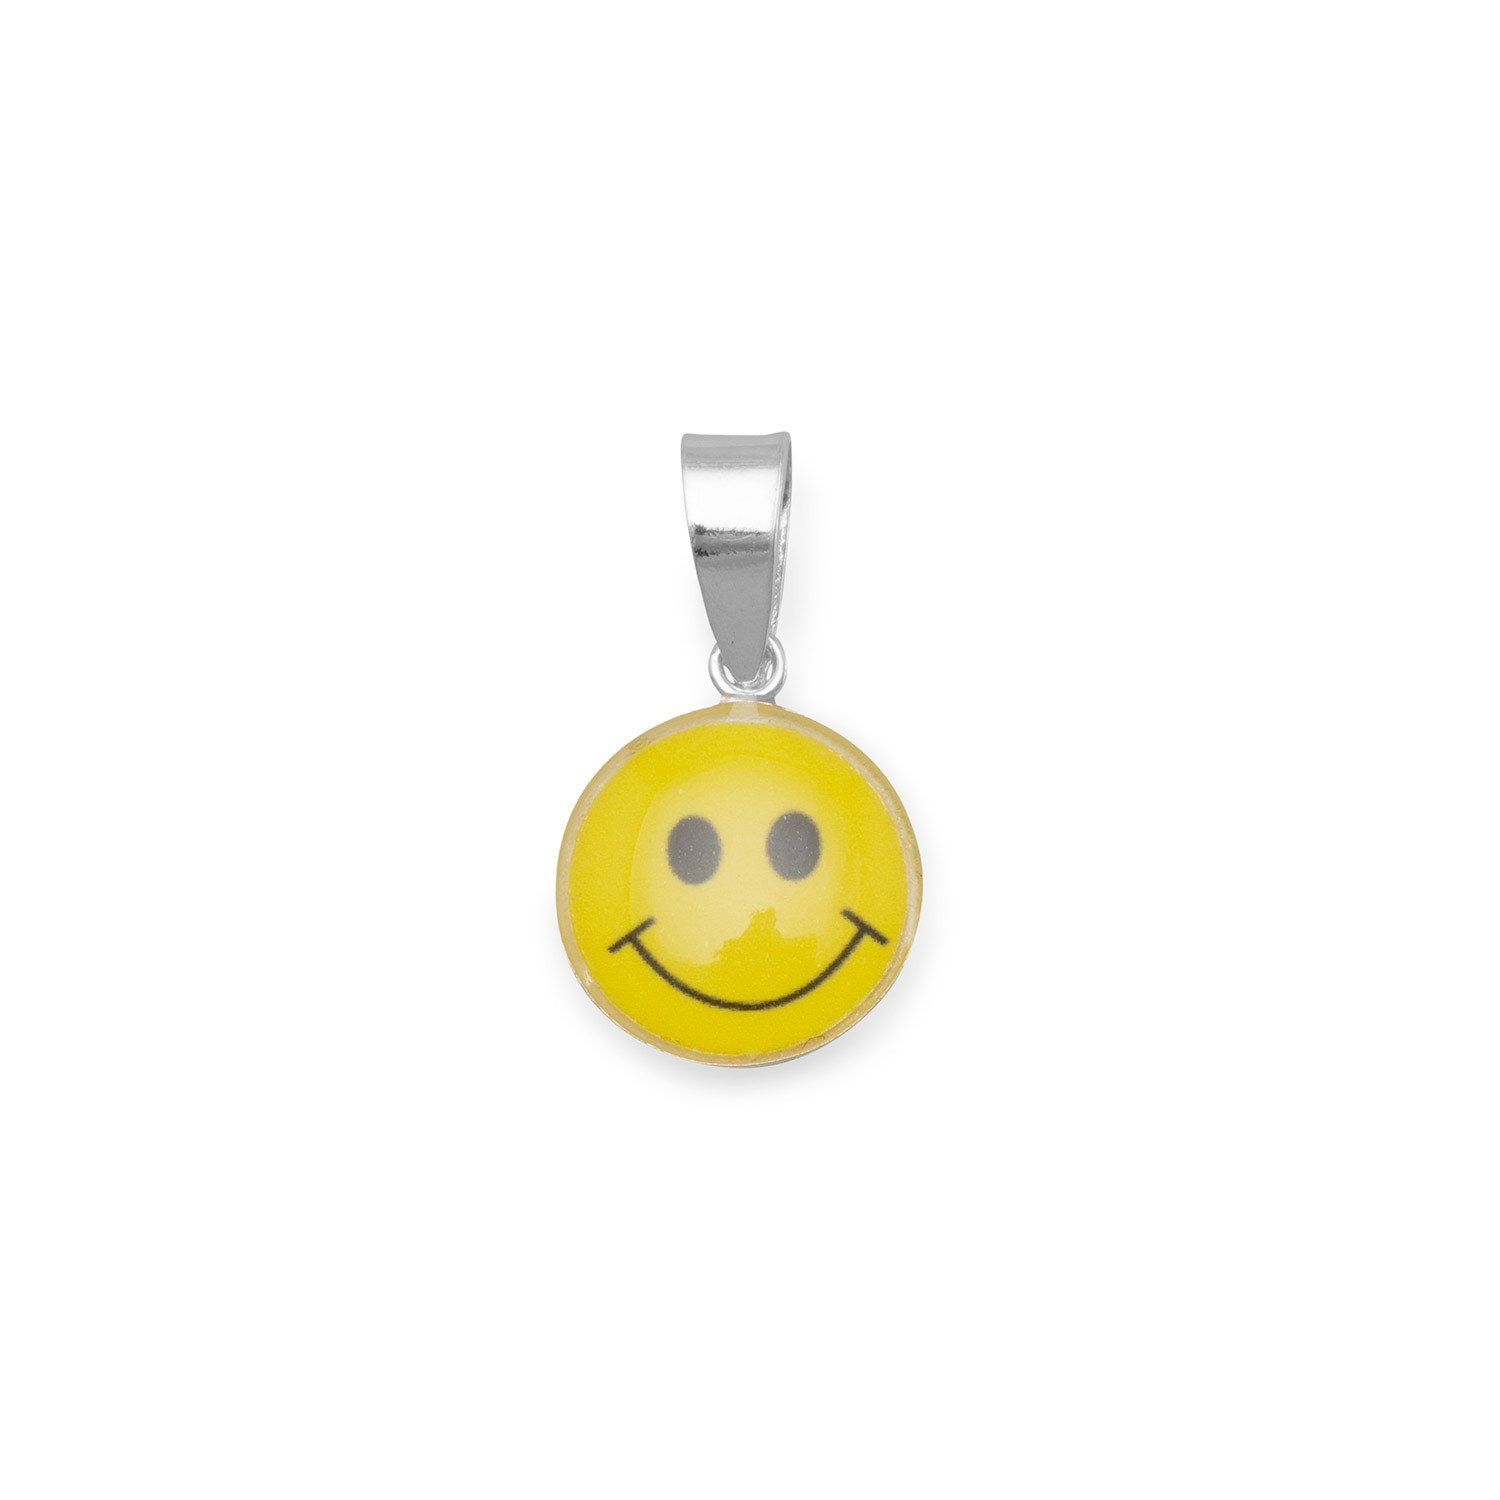 Smiley face pendant products pinterest products smiley face pendant aloadofball